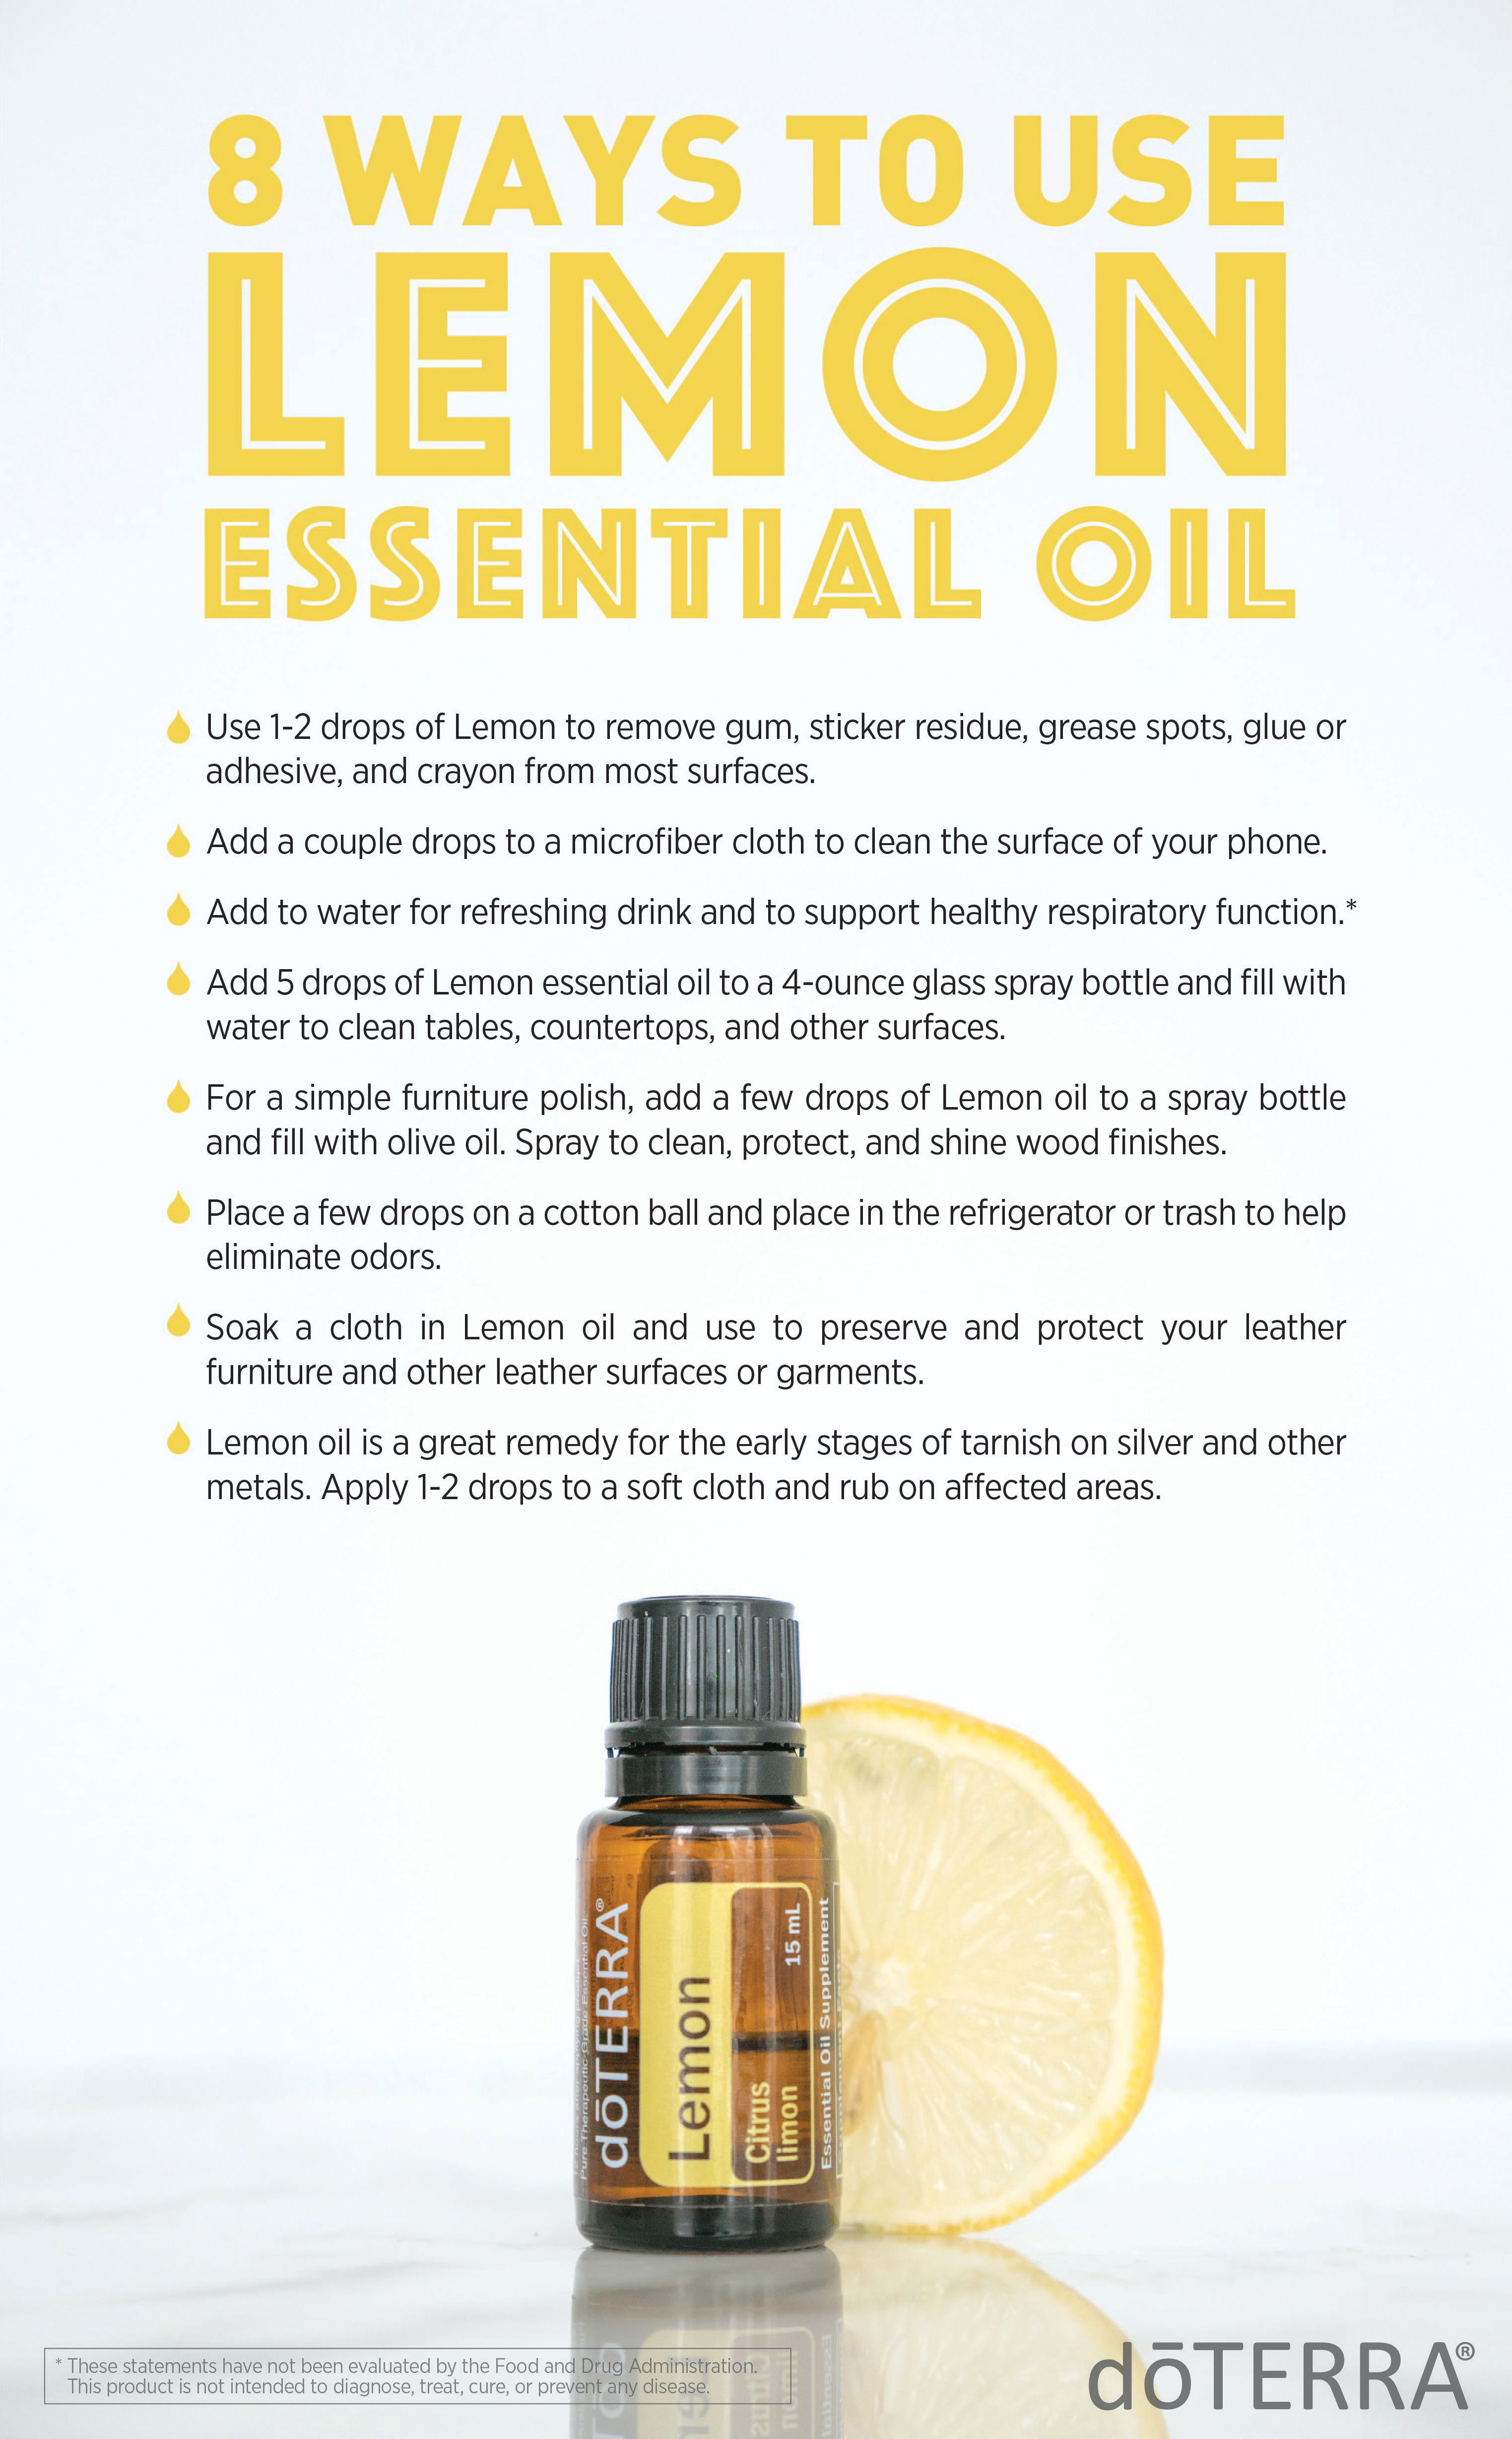 The cleansing purifying and invigorating properties of lemon make